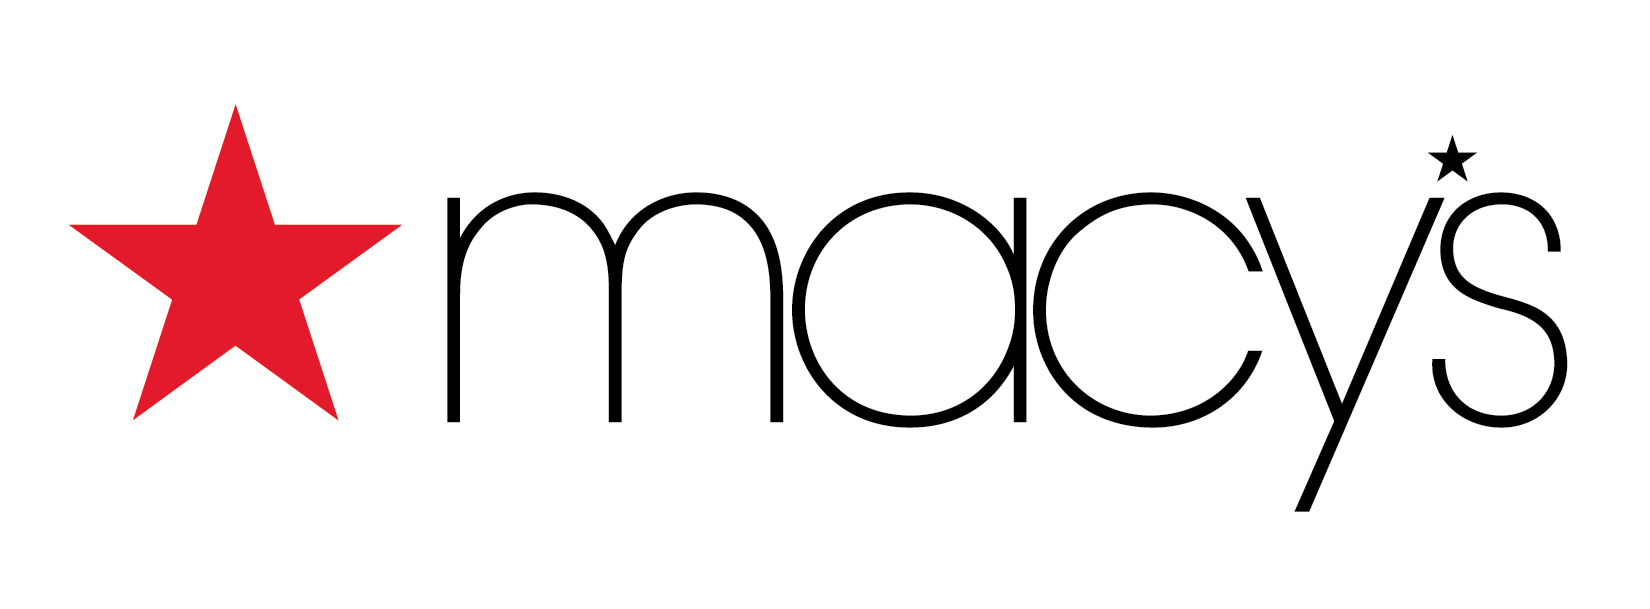 macys-logo-on-white_high.jpg